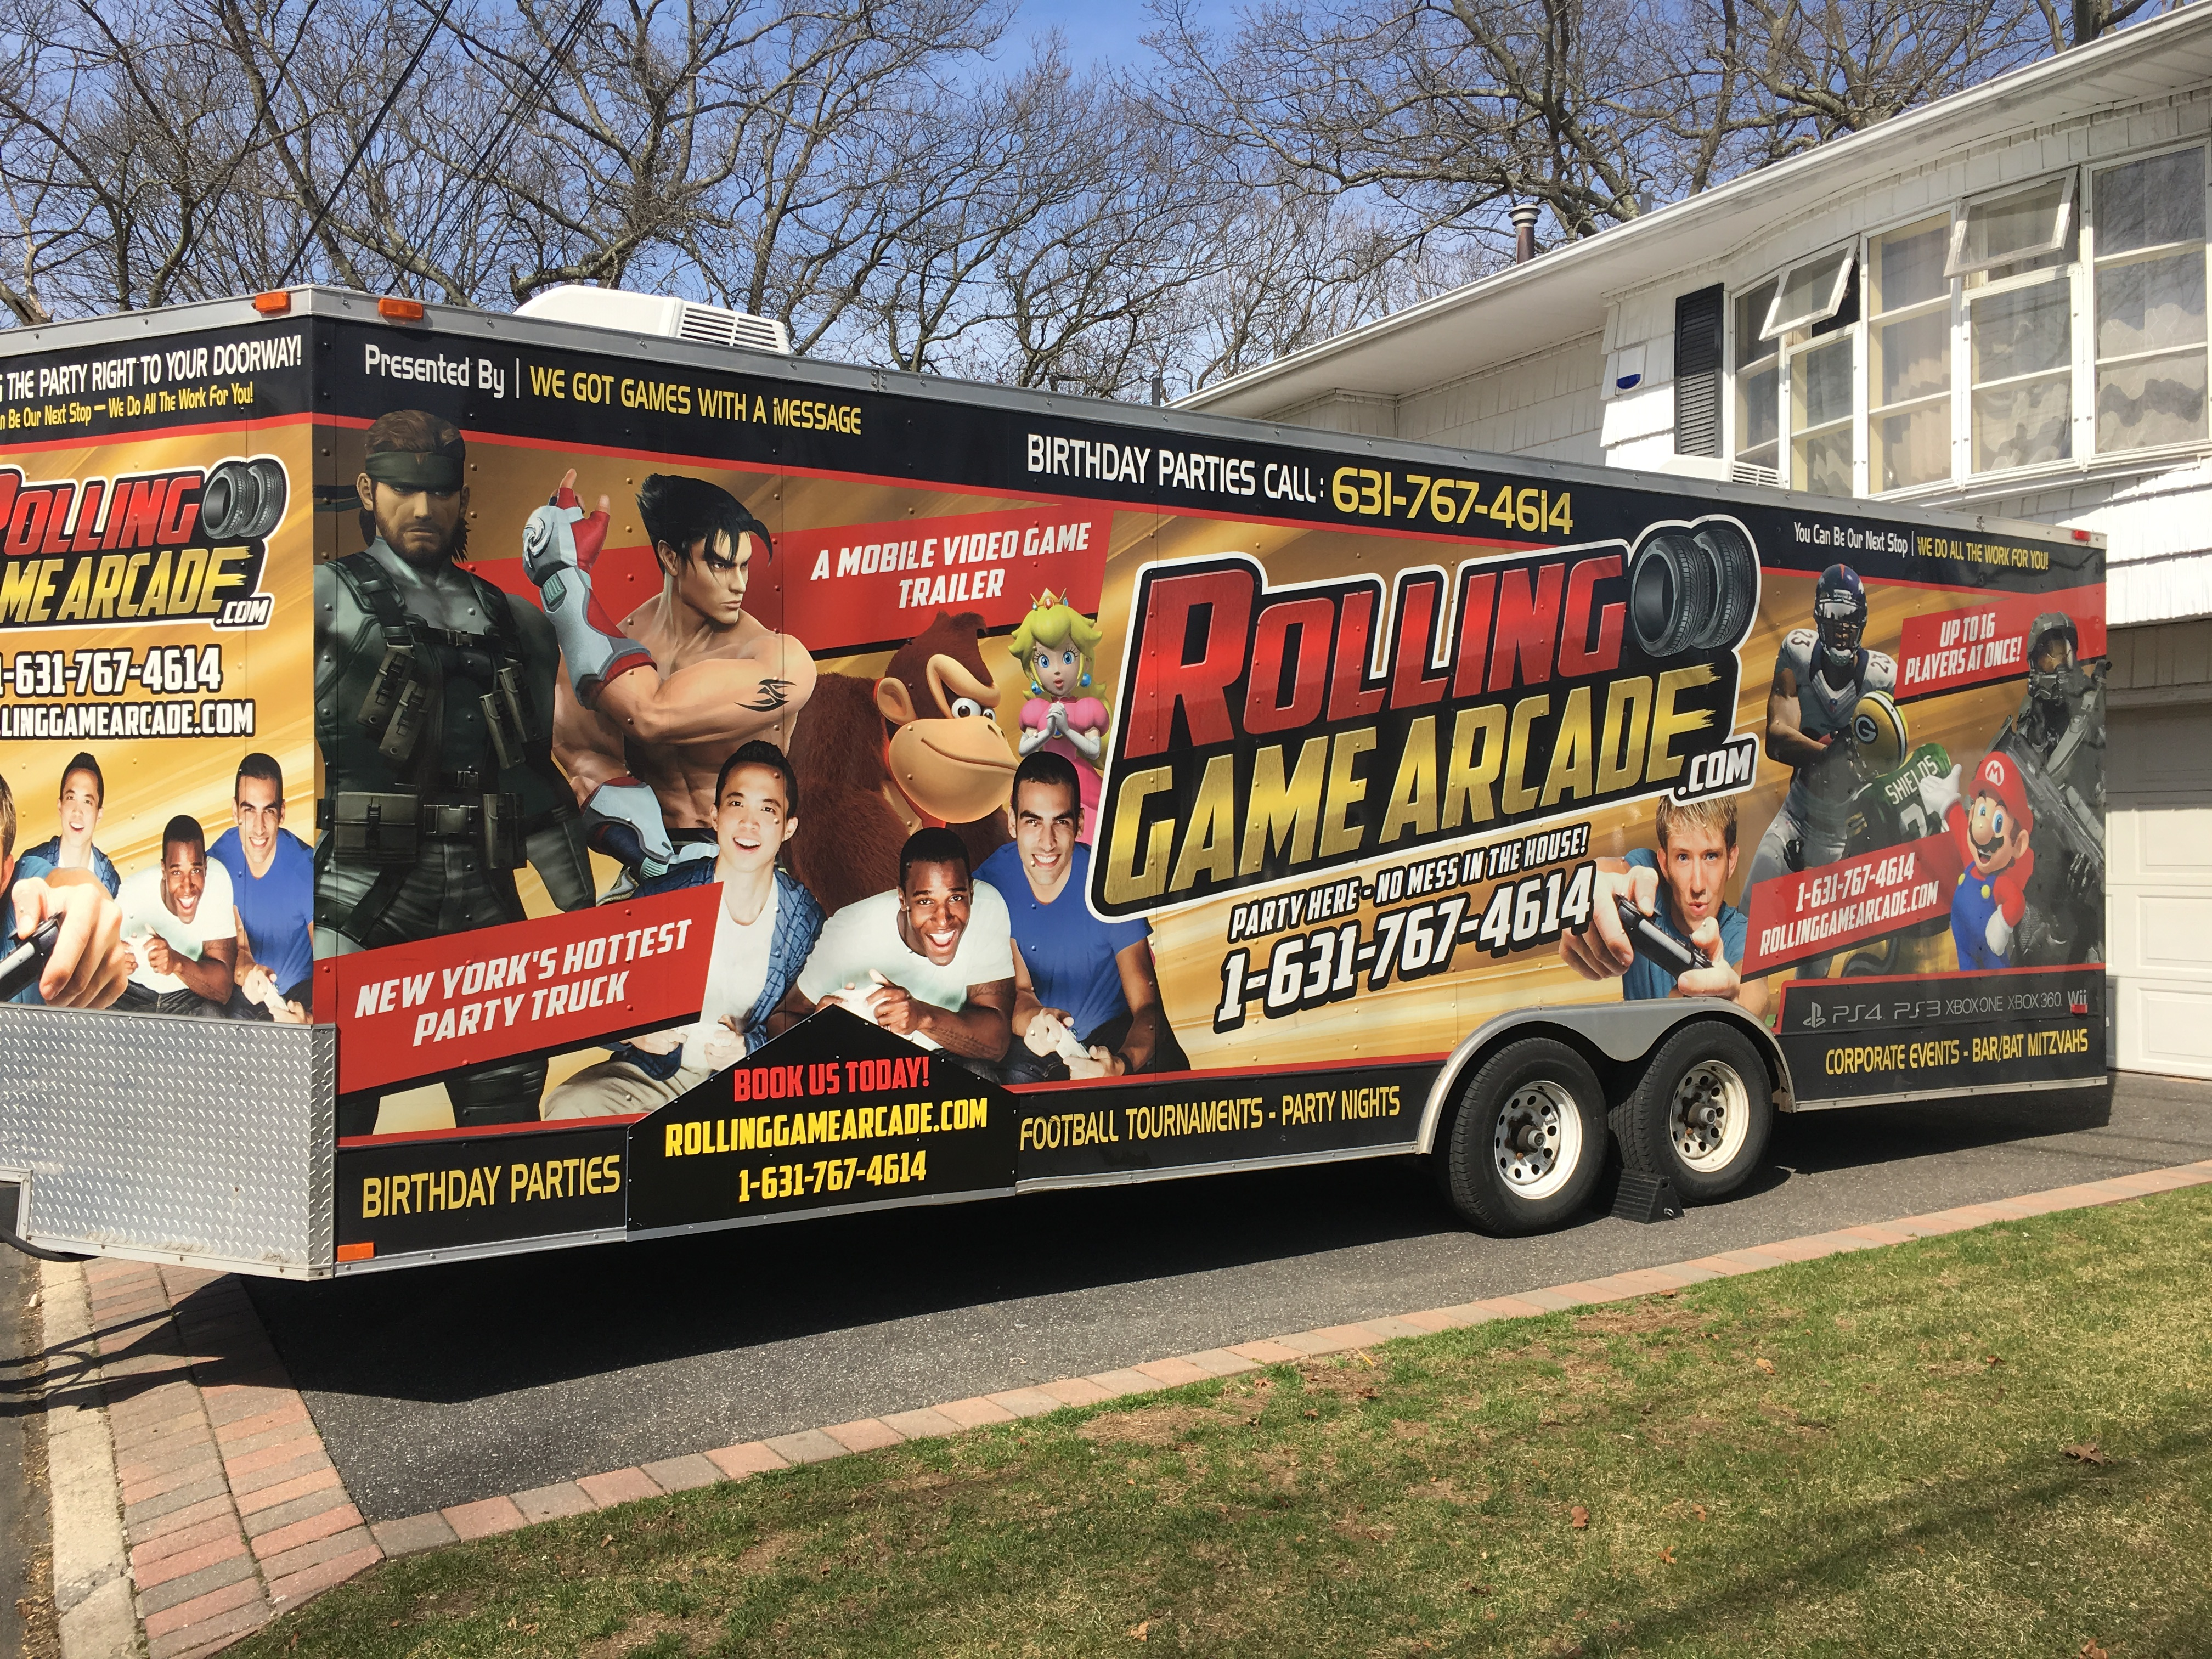 Video Game Truck In New York City And